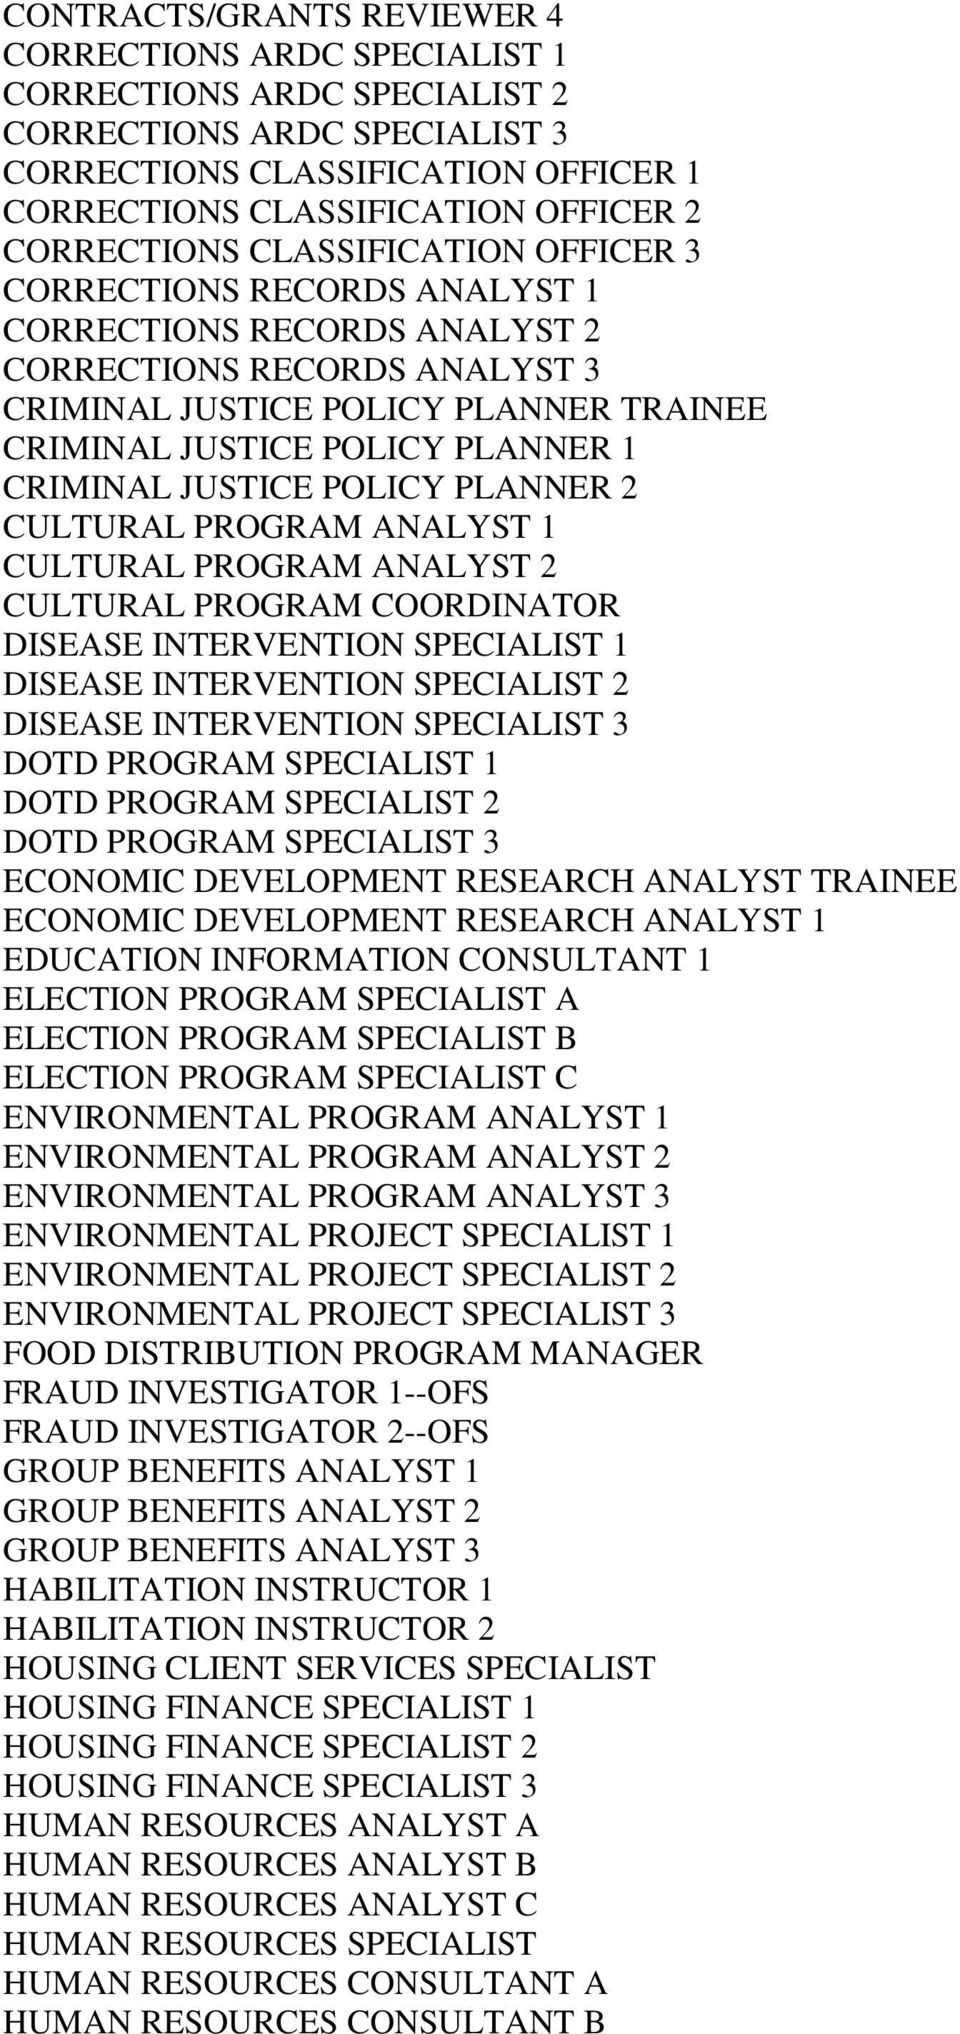 1 CRIMINAL JUSTICE POLICY PLANNER 2 CULTURAL PROGRAM ANALYST 1 CULTURAL PROGRAM ANALYST 2 CULTURAL PROGRAM COORDINATOR DISEASE INTERVENTION SPECIALIST 1 DISEASE INTERVENTION SPECIALIST 2 DISEASE